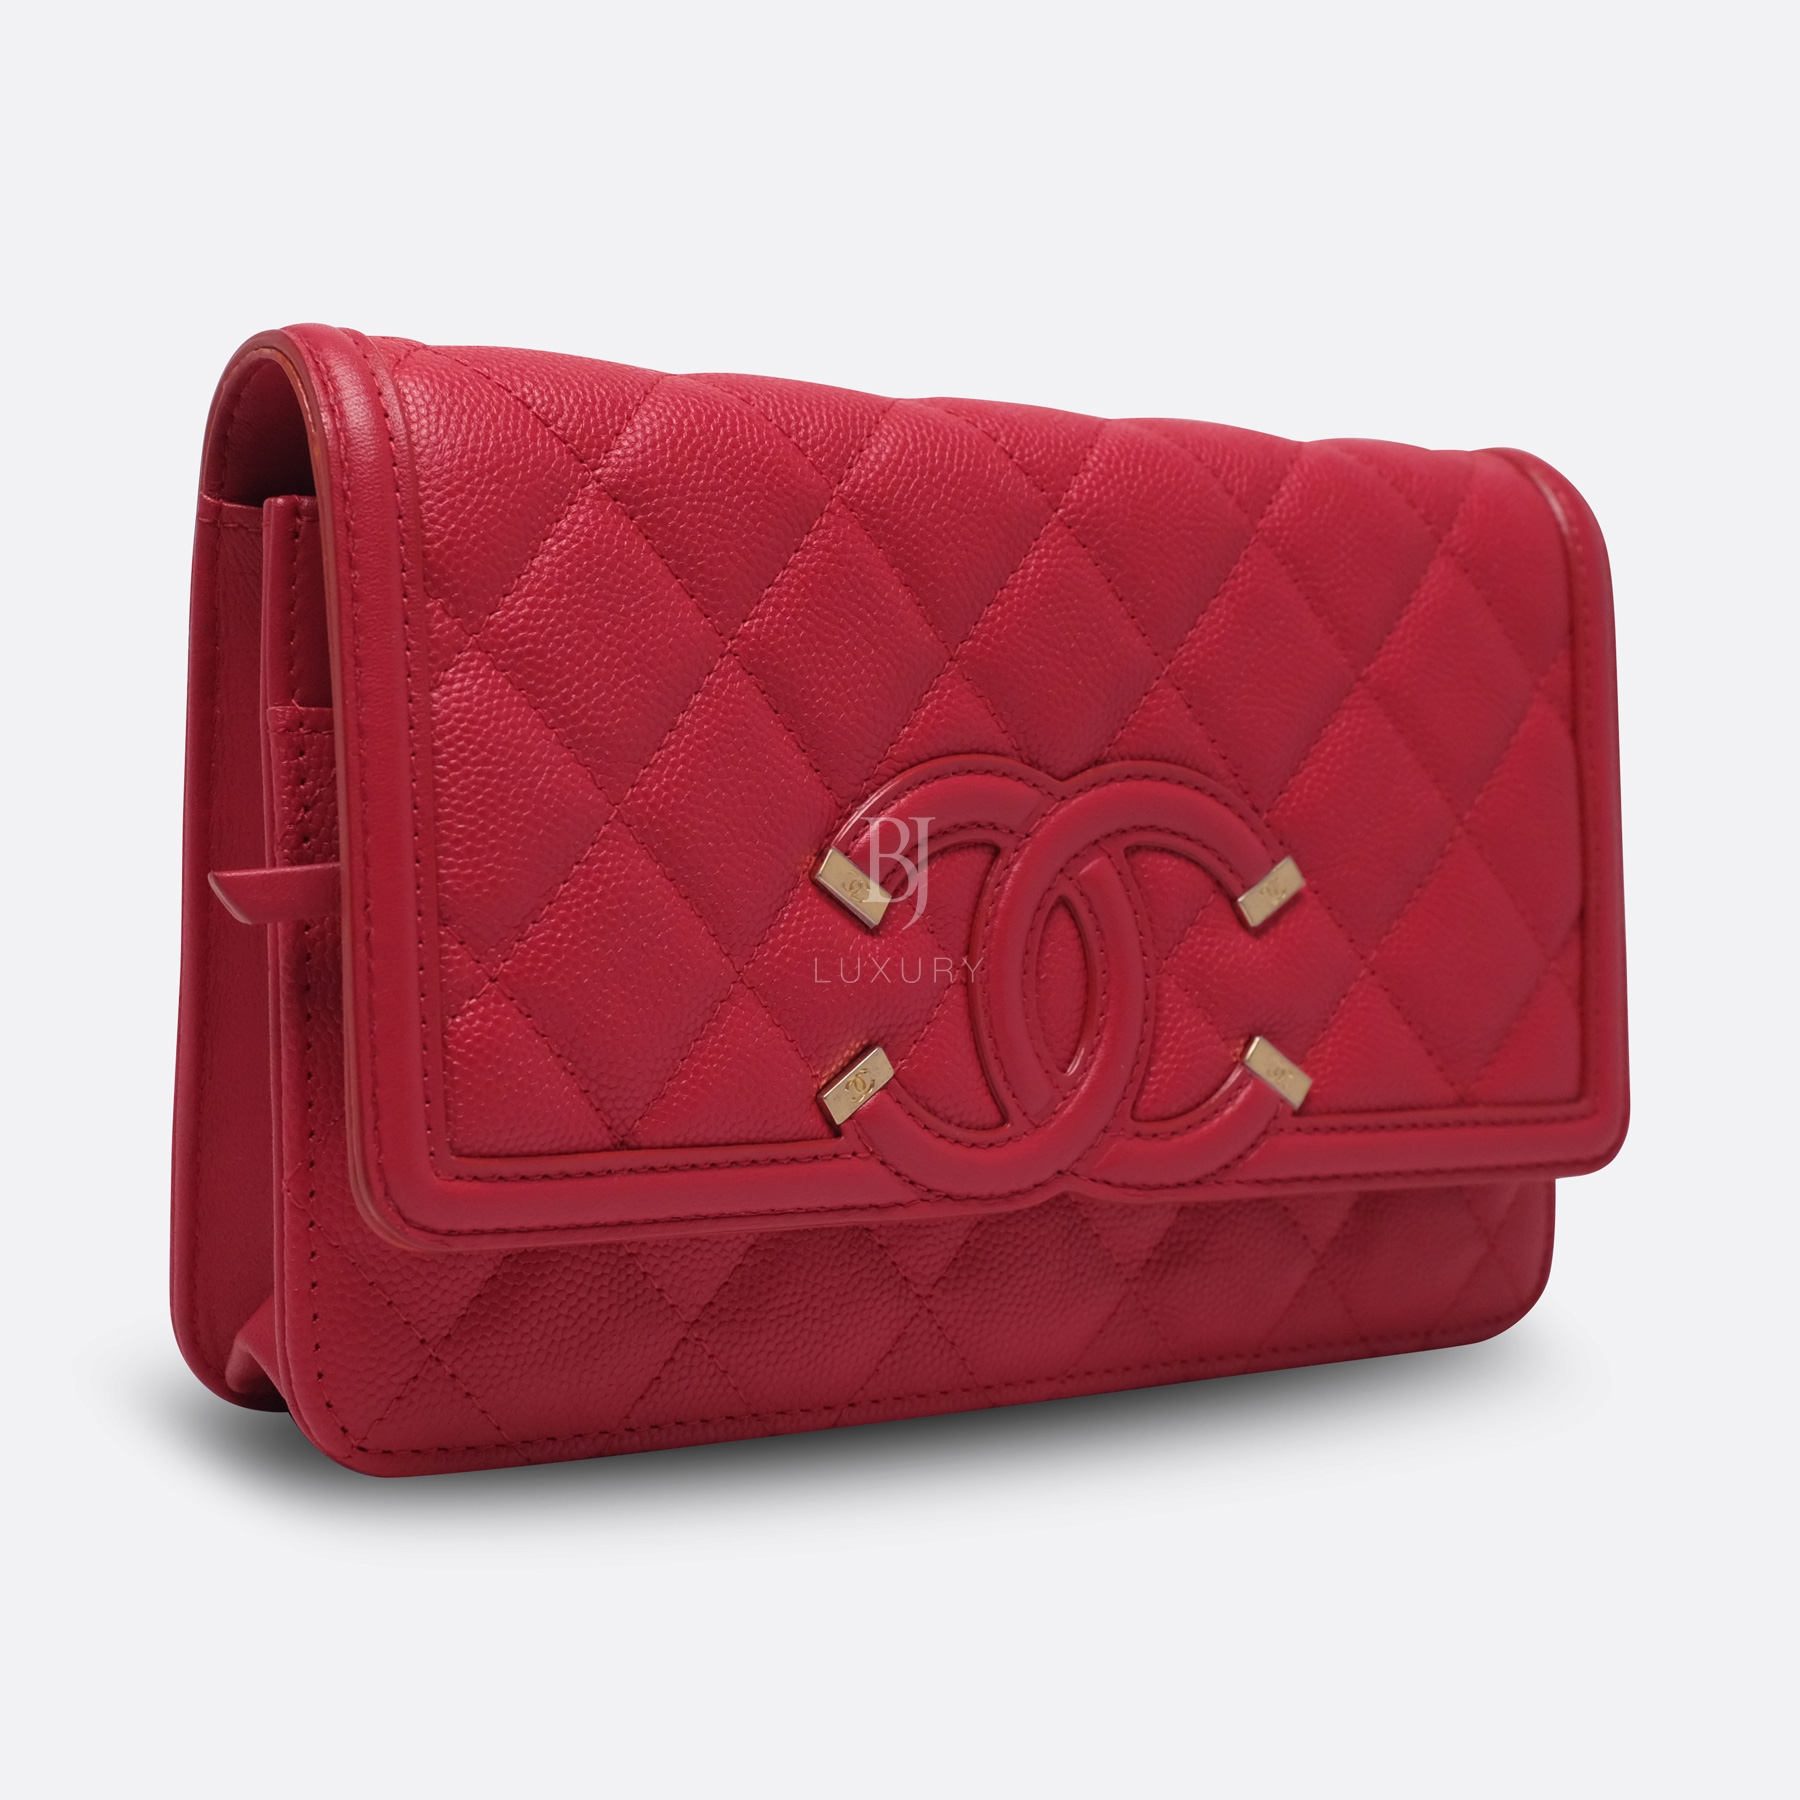 Chanel Wallet On Chain Red Caviar Brushed Gold BJ Luxury 2.jpg